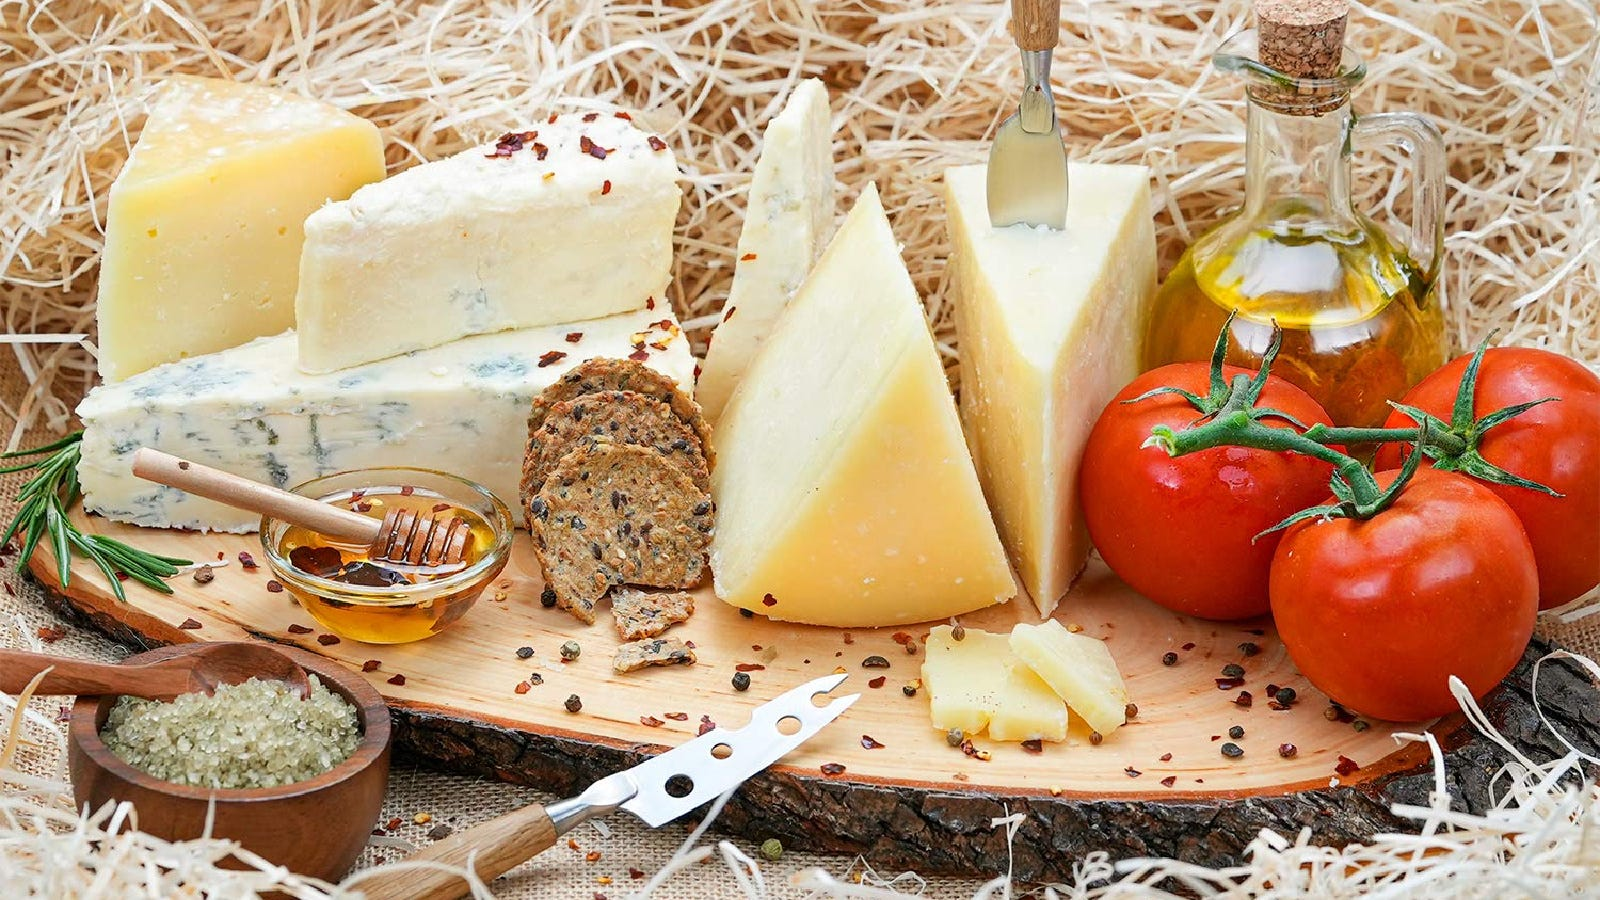 An assortment of imported European cheeses by Marky's.